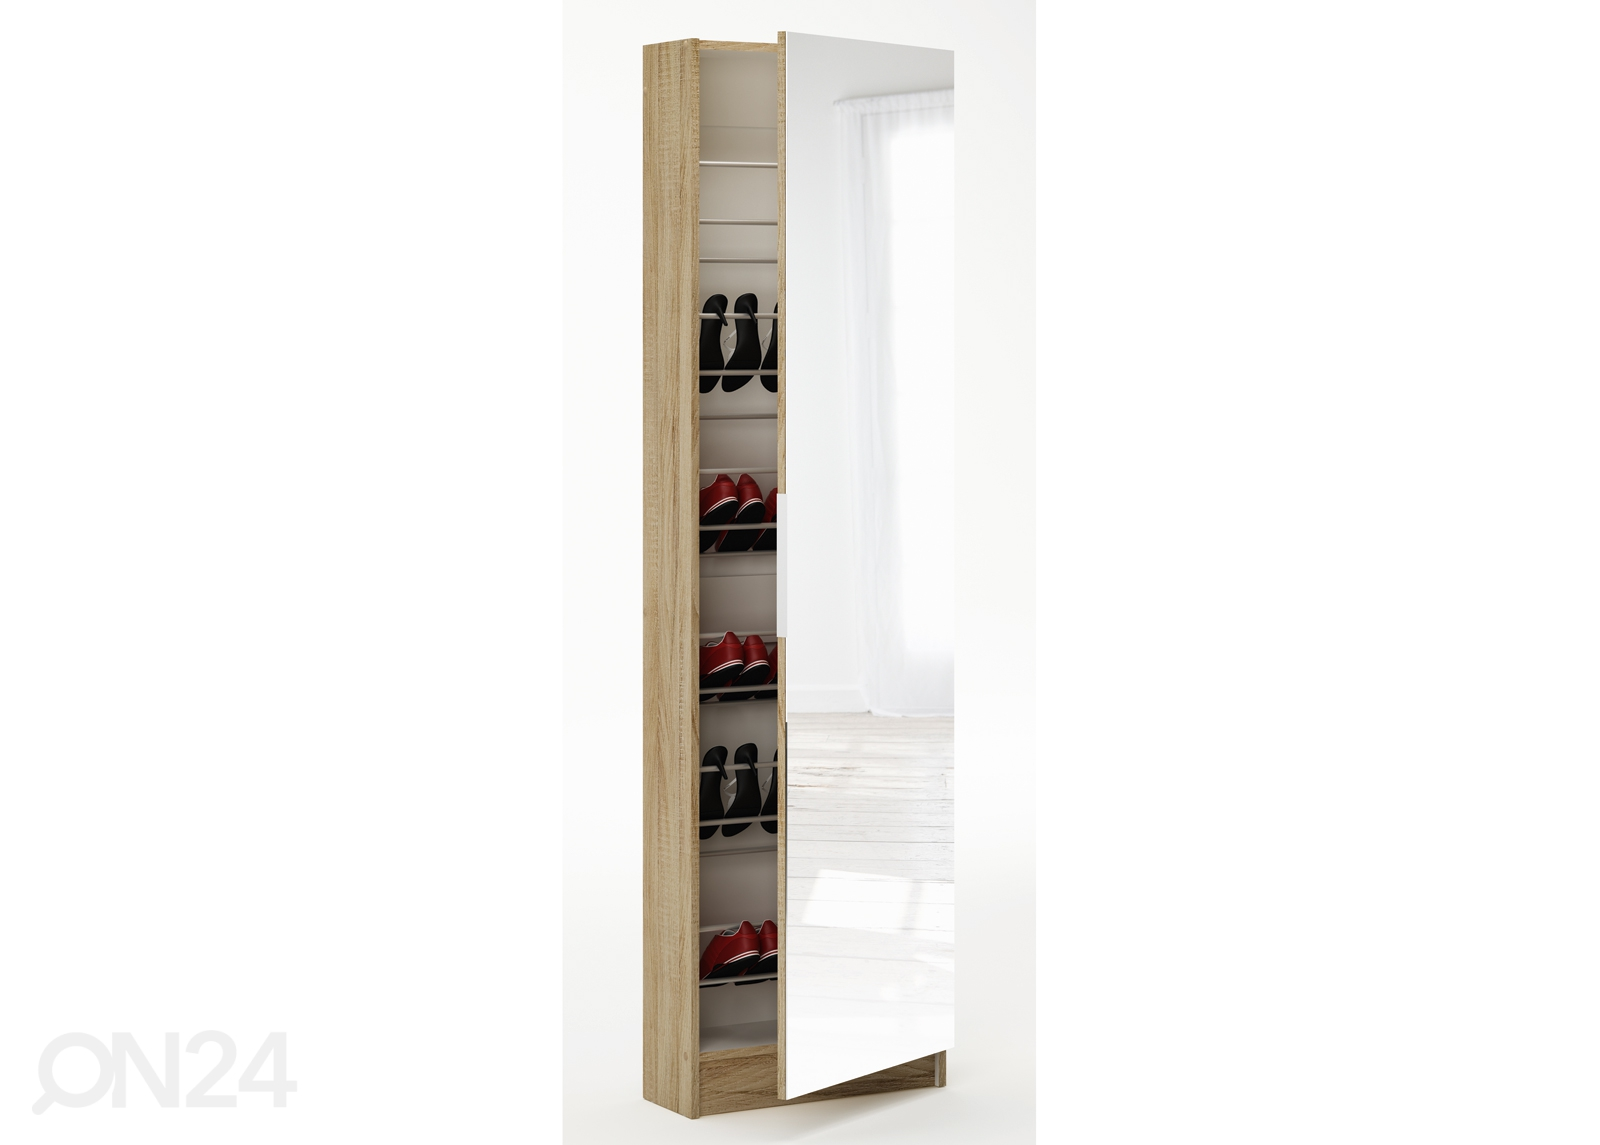 Hallway shoe cabinets - the furniture co.